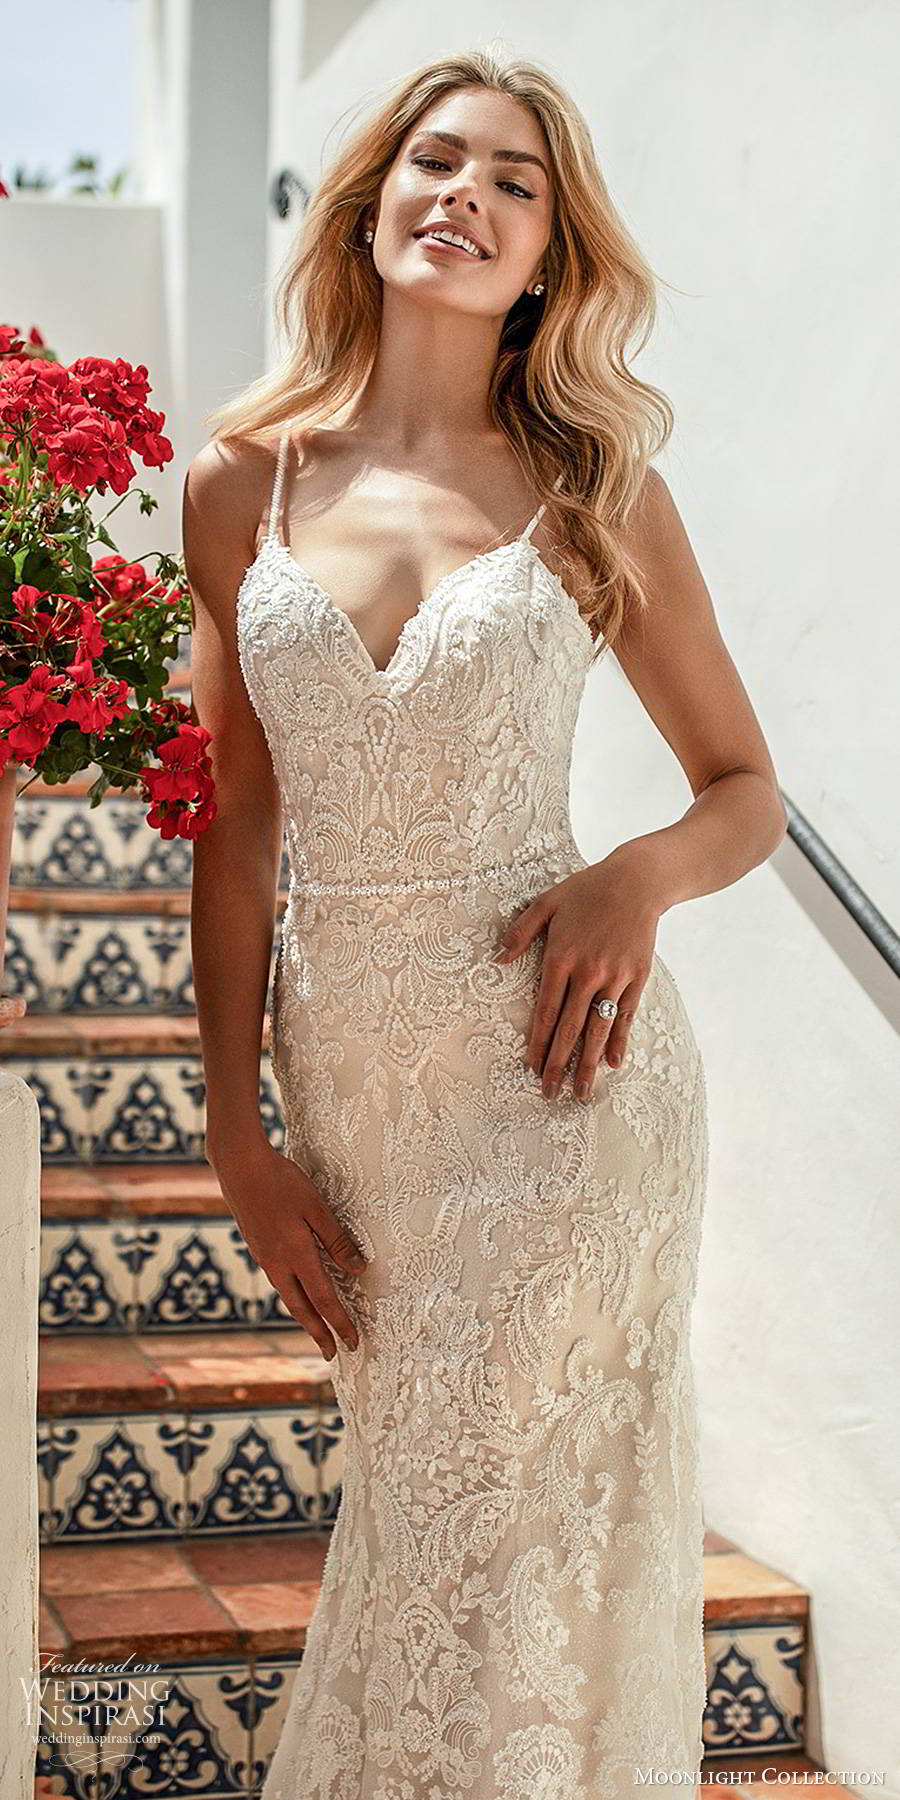 moonlight collection spring 2020 bridal sleeveless thin straps sweetheart neckline fully embellished lace elegant trumpet sheath wedding dress chapel train  (4) zv